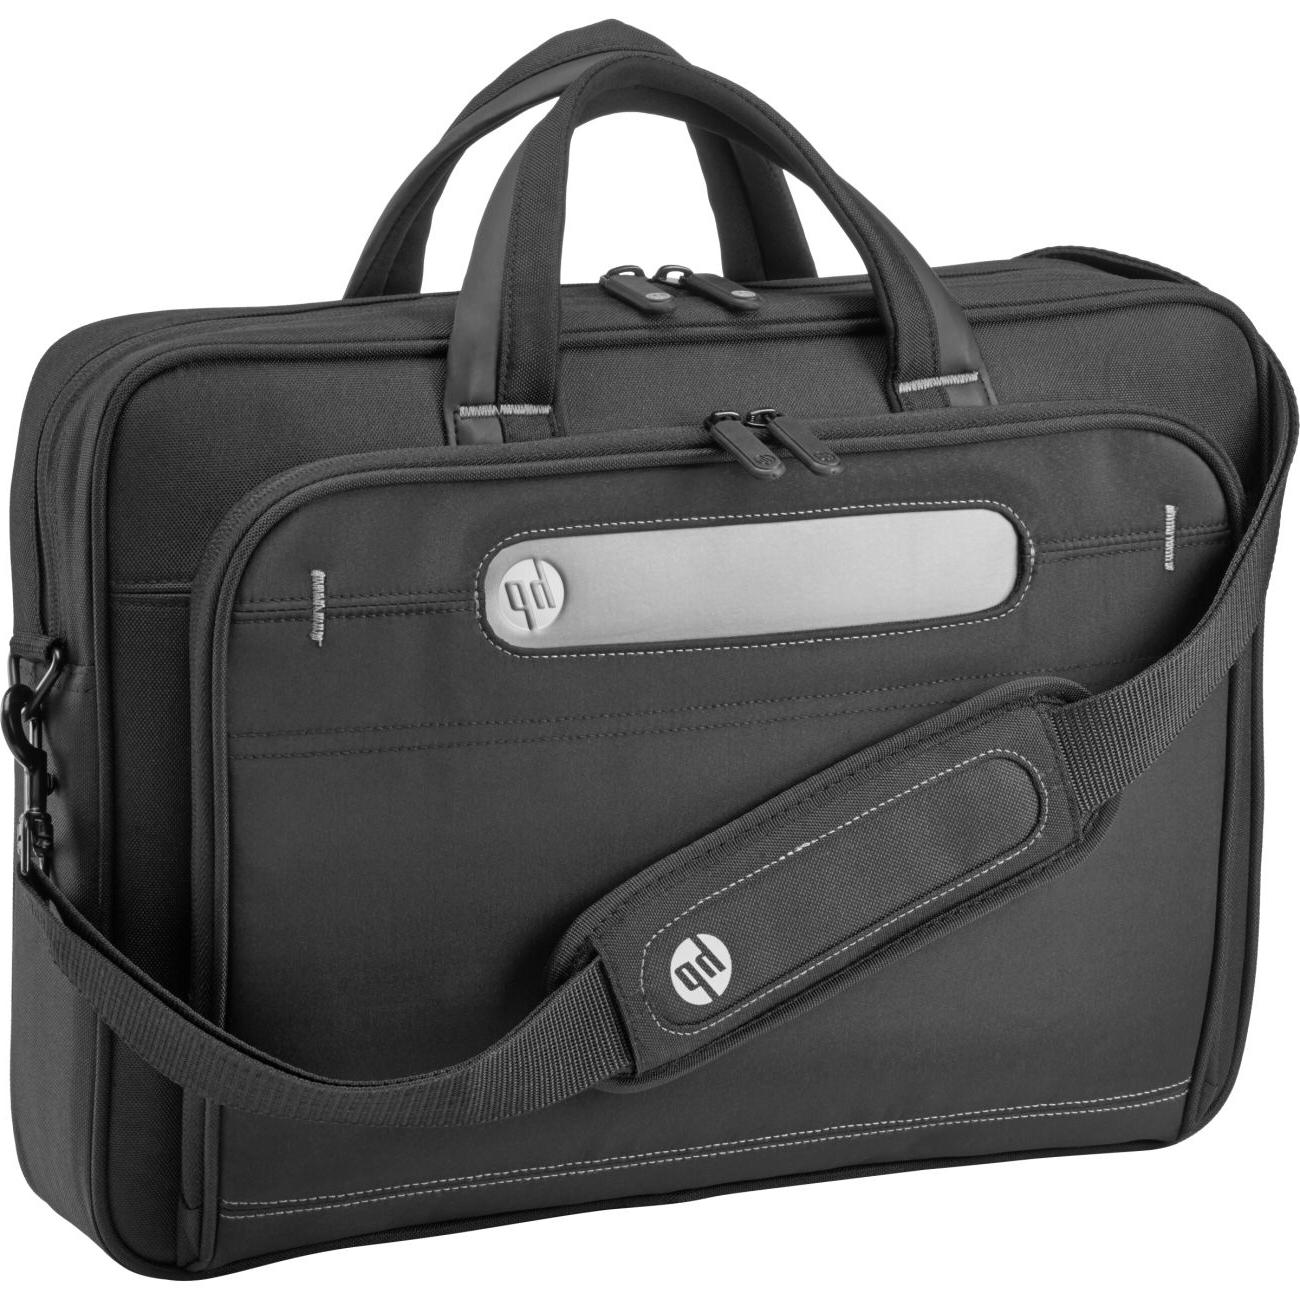 business carrying case